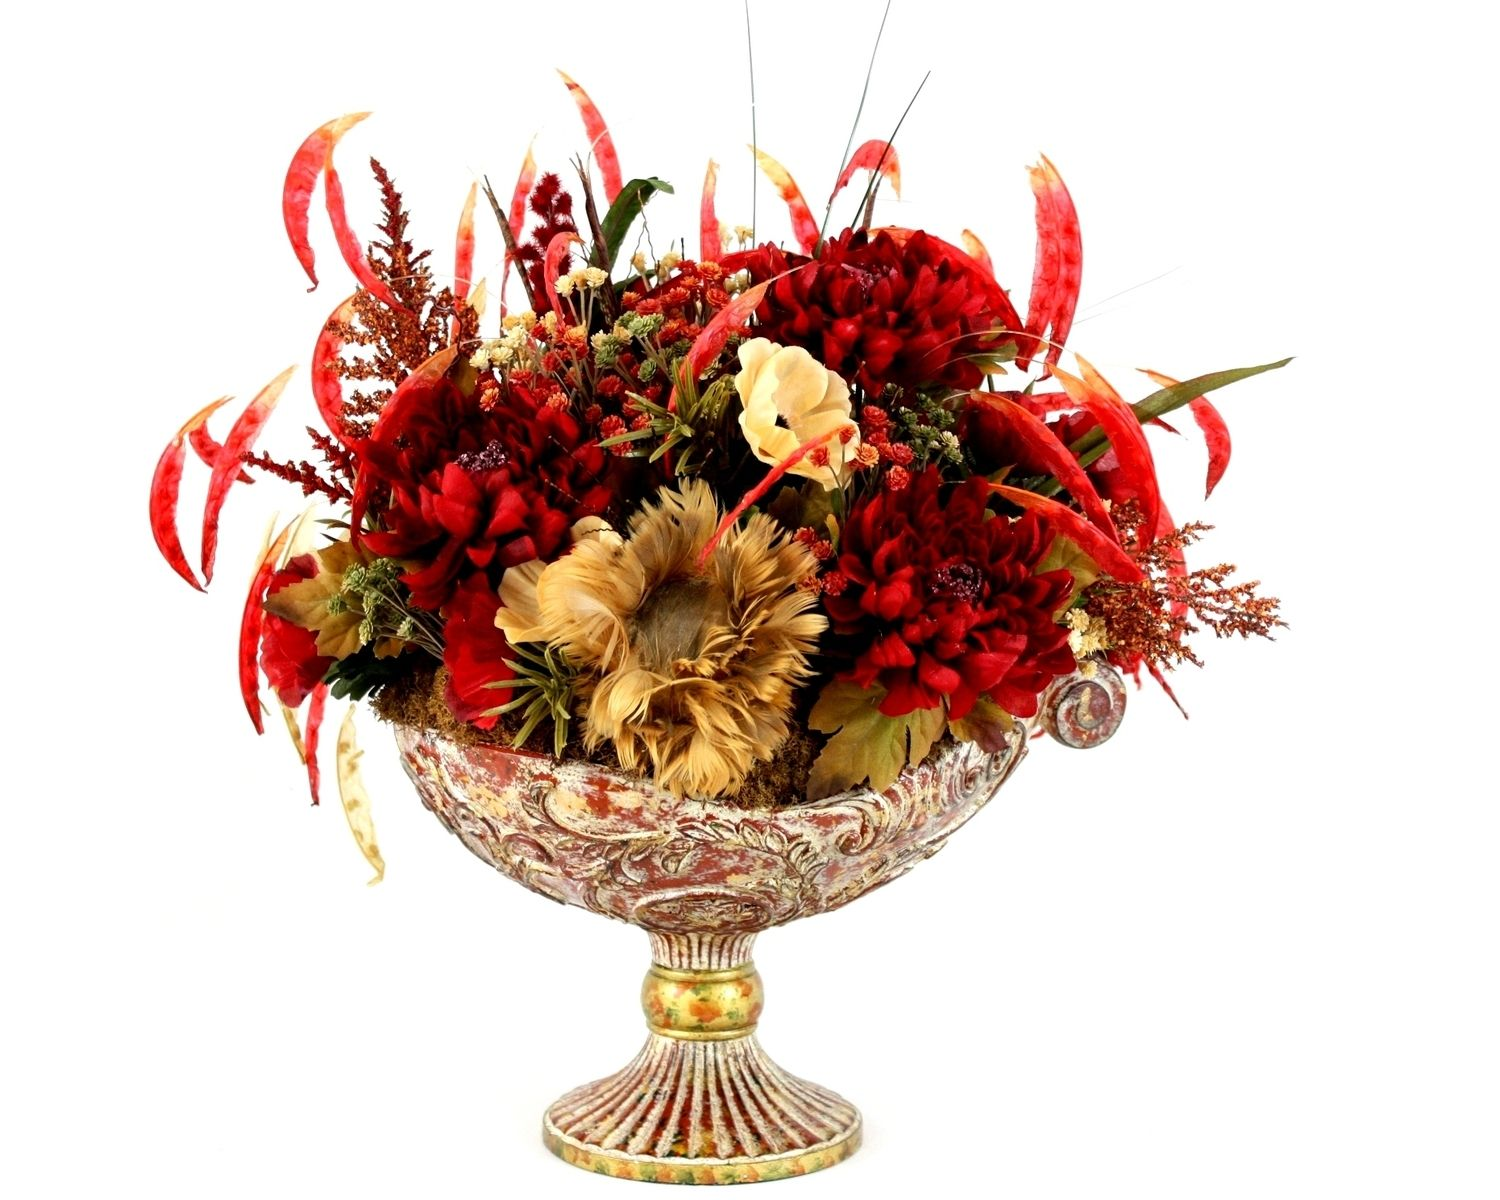 Hand Crafted Dining Table Centerpiece Silk Flower Arrangement Home Decor Dining Room Decor By